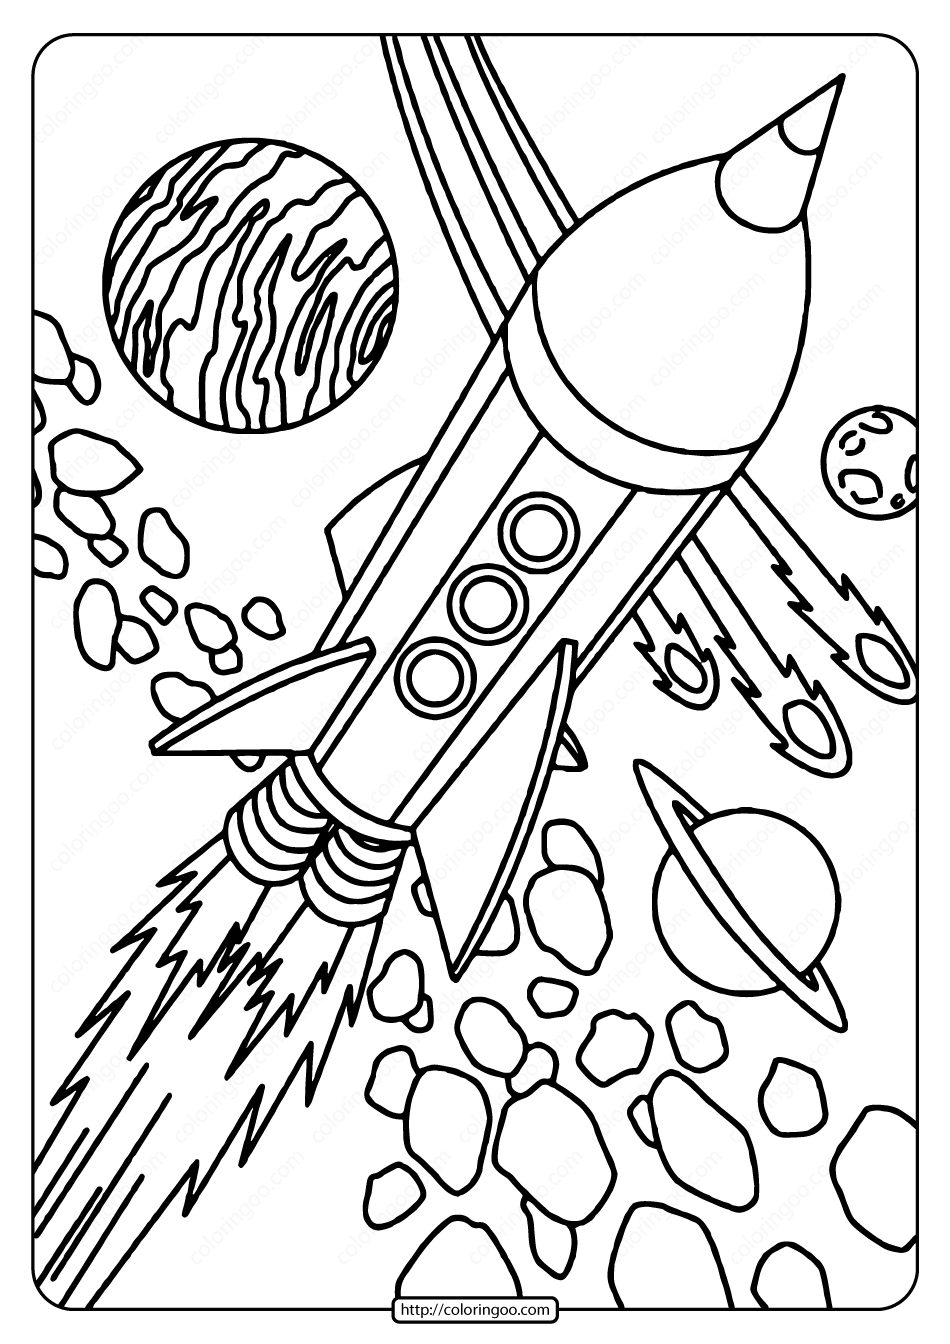 astronomy coloring pages spaceship to color in spacecraft coloring pages space astronomy pages coloring